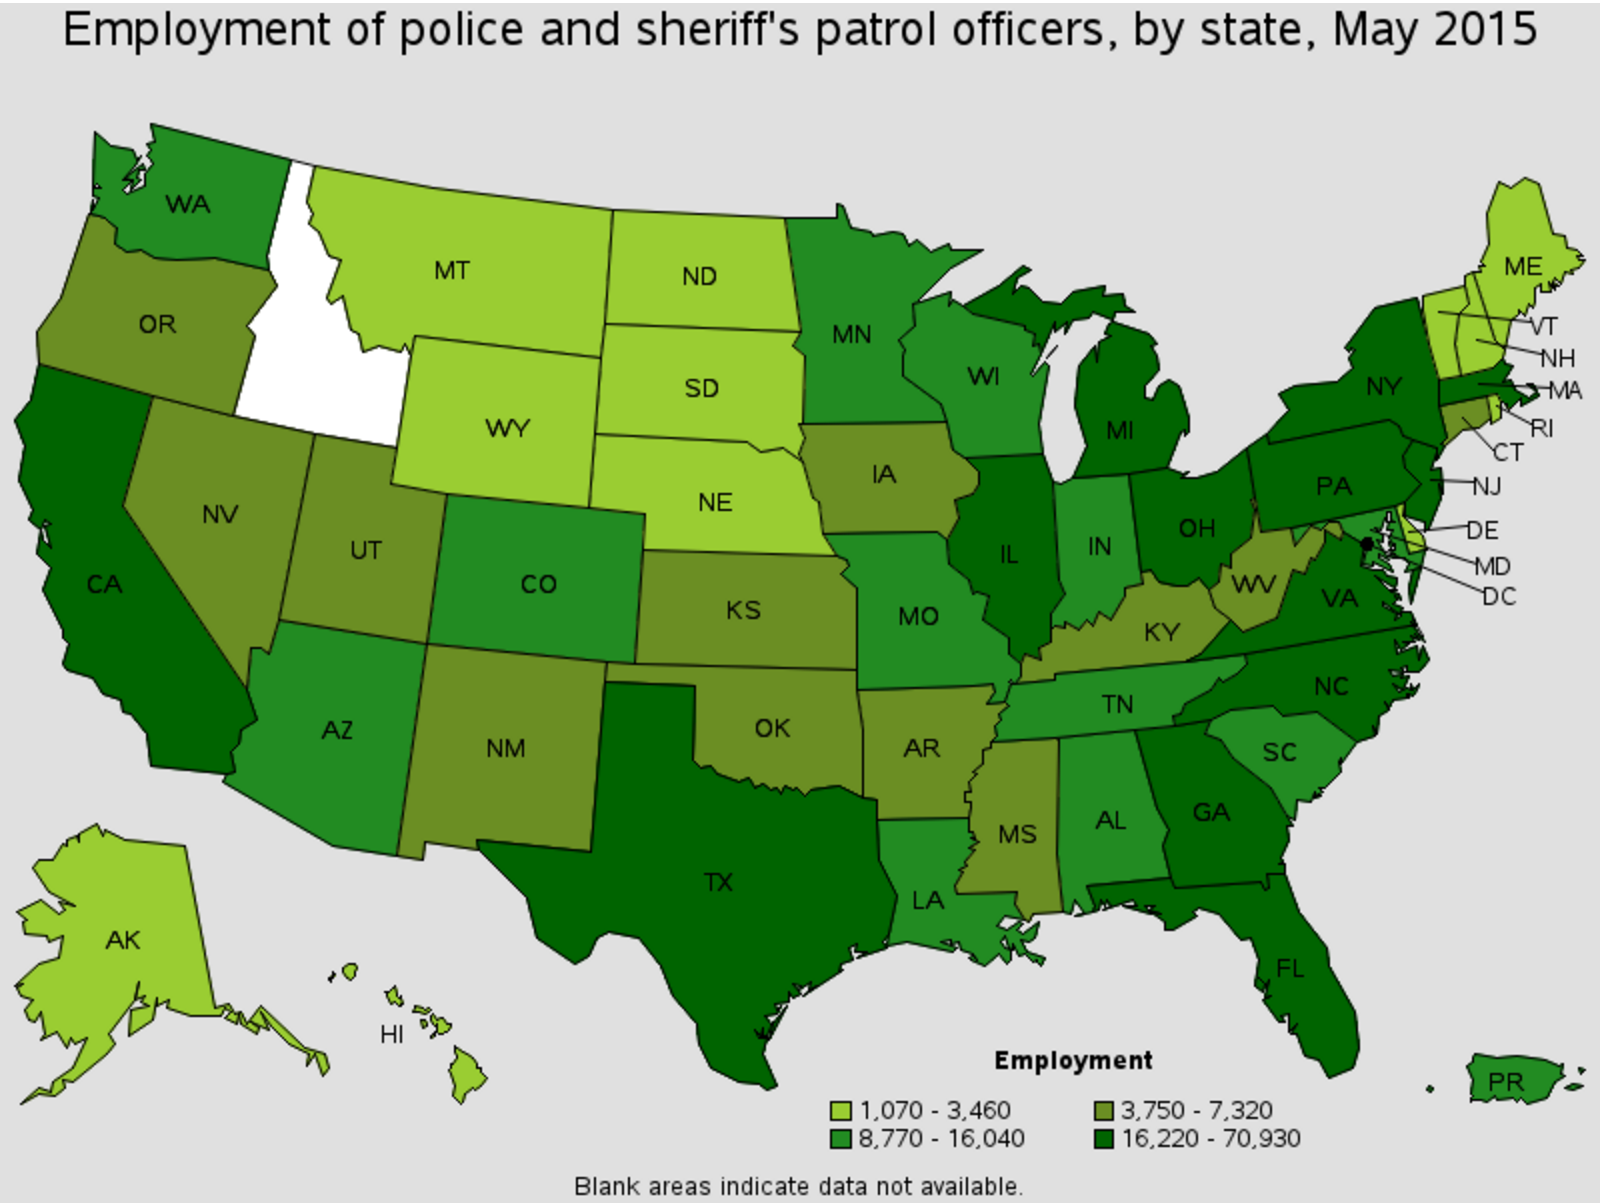 Kearny police officer career outlook by state